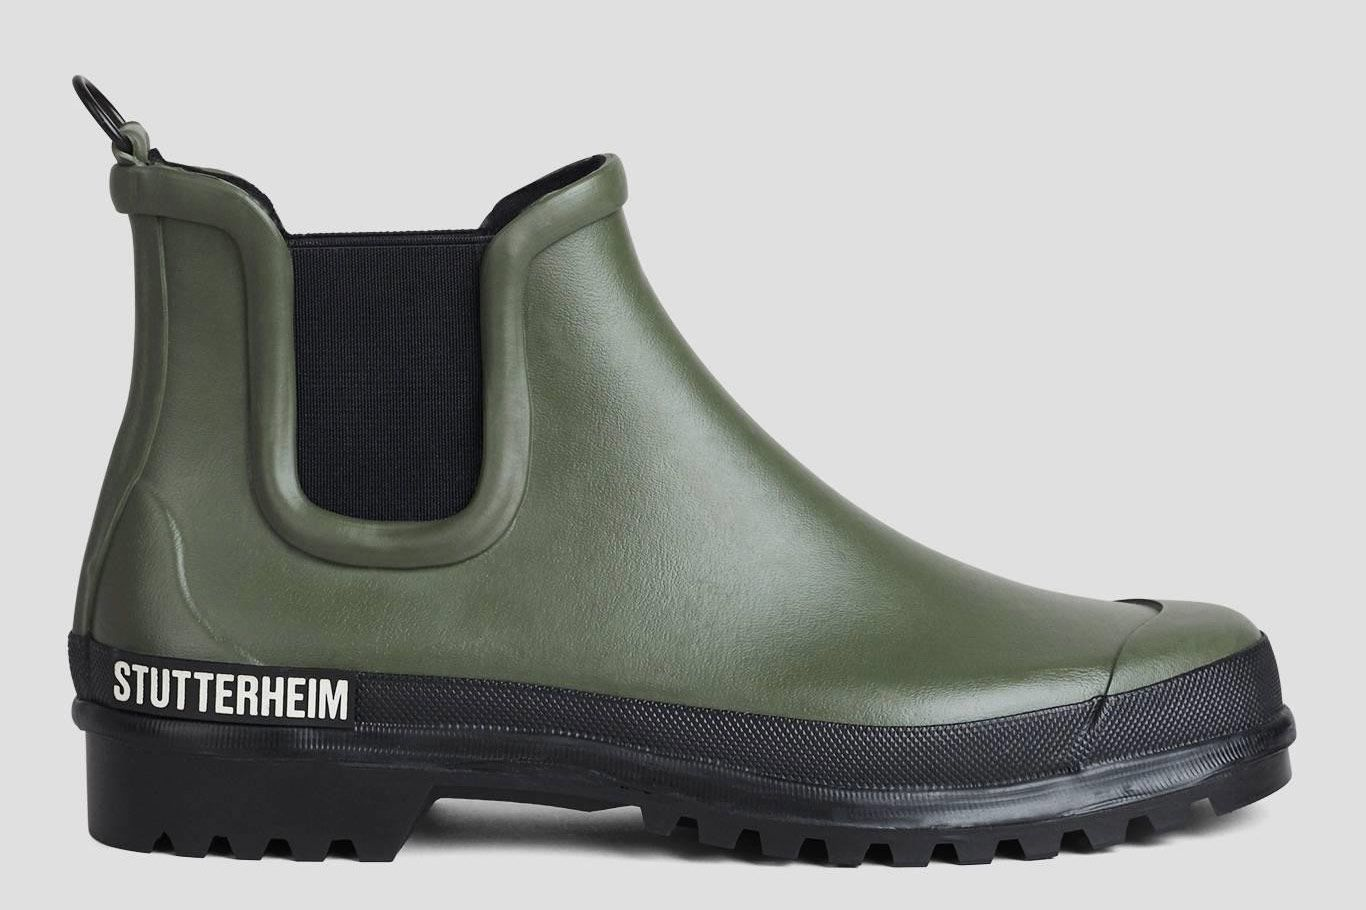 54846b46ac98 17 Stylish Waterproof Boots for Men 2019